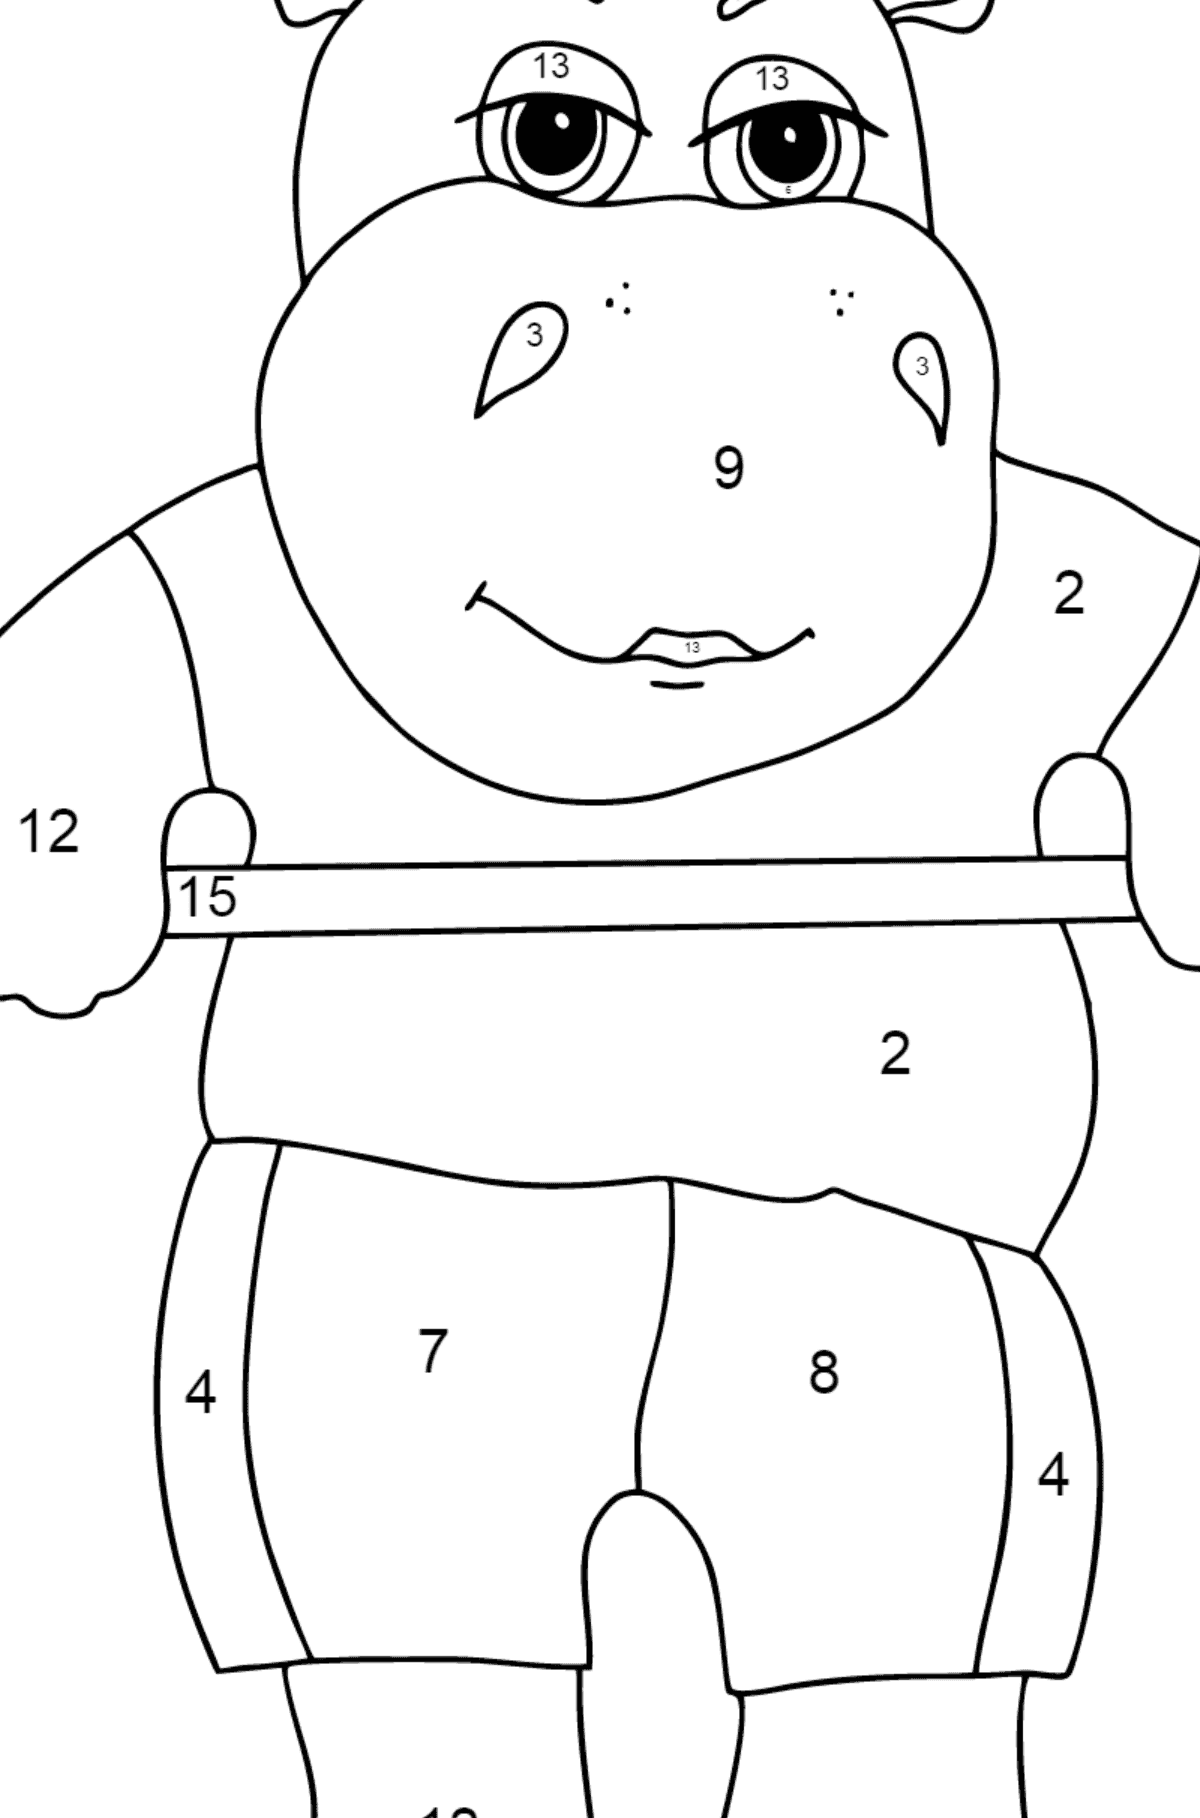 Coloring Page - A Hippo Lifts a Barbell for Children  - Color by Number